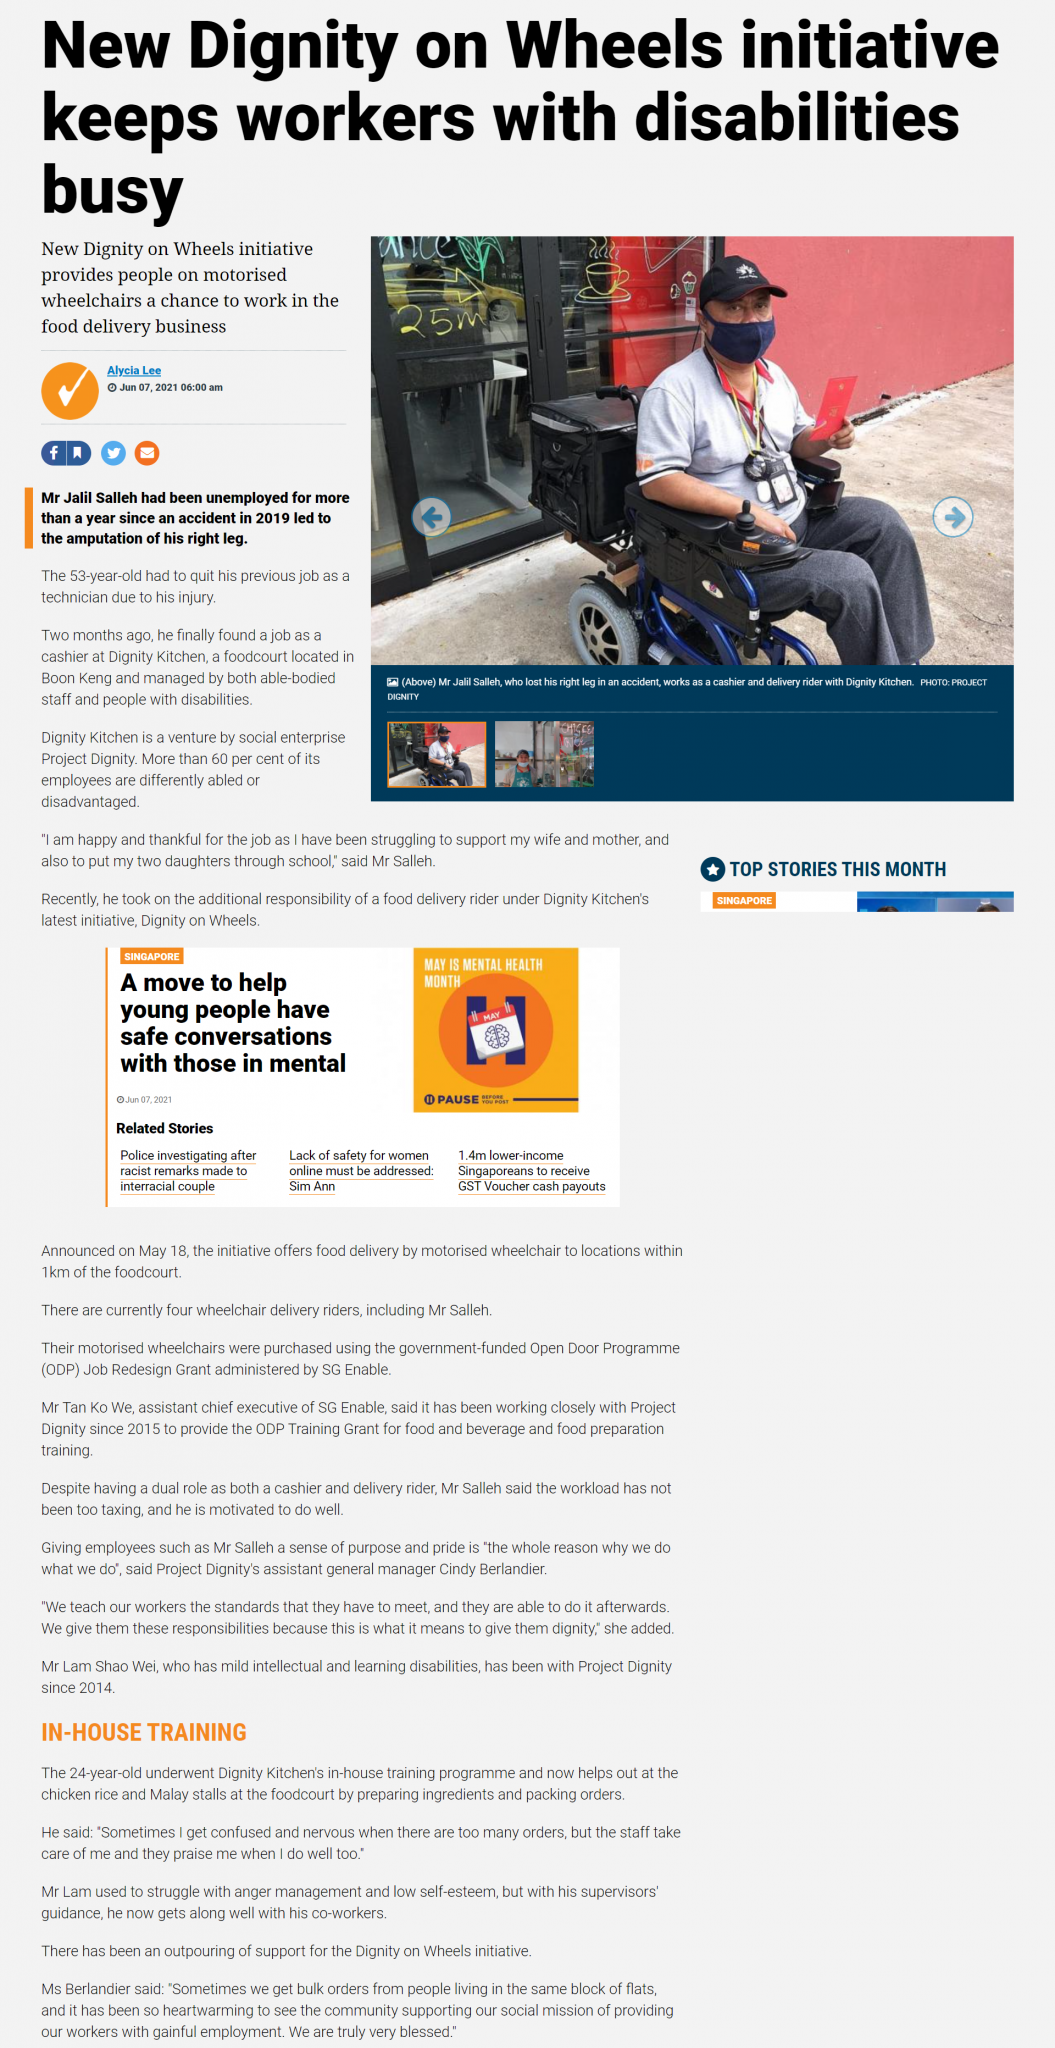 screencapture-tnp-sg-news-singapore-new-dignity-wheels-initiative-keeps-workers-disabilities-busy-2021-06-07-19_37_42